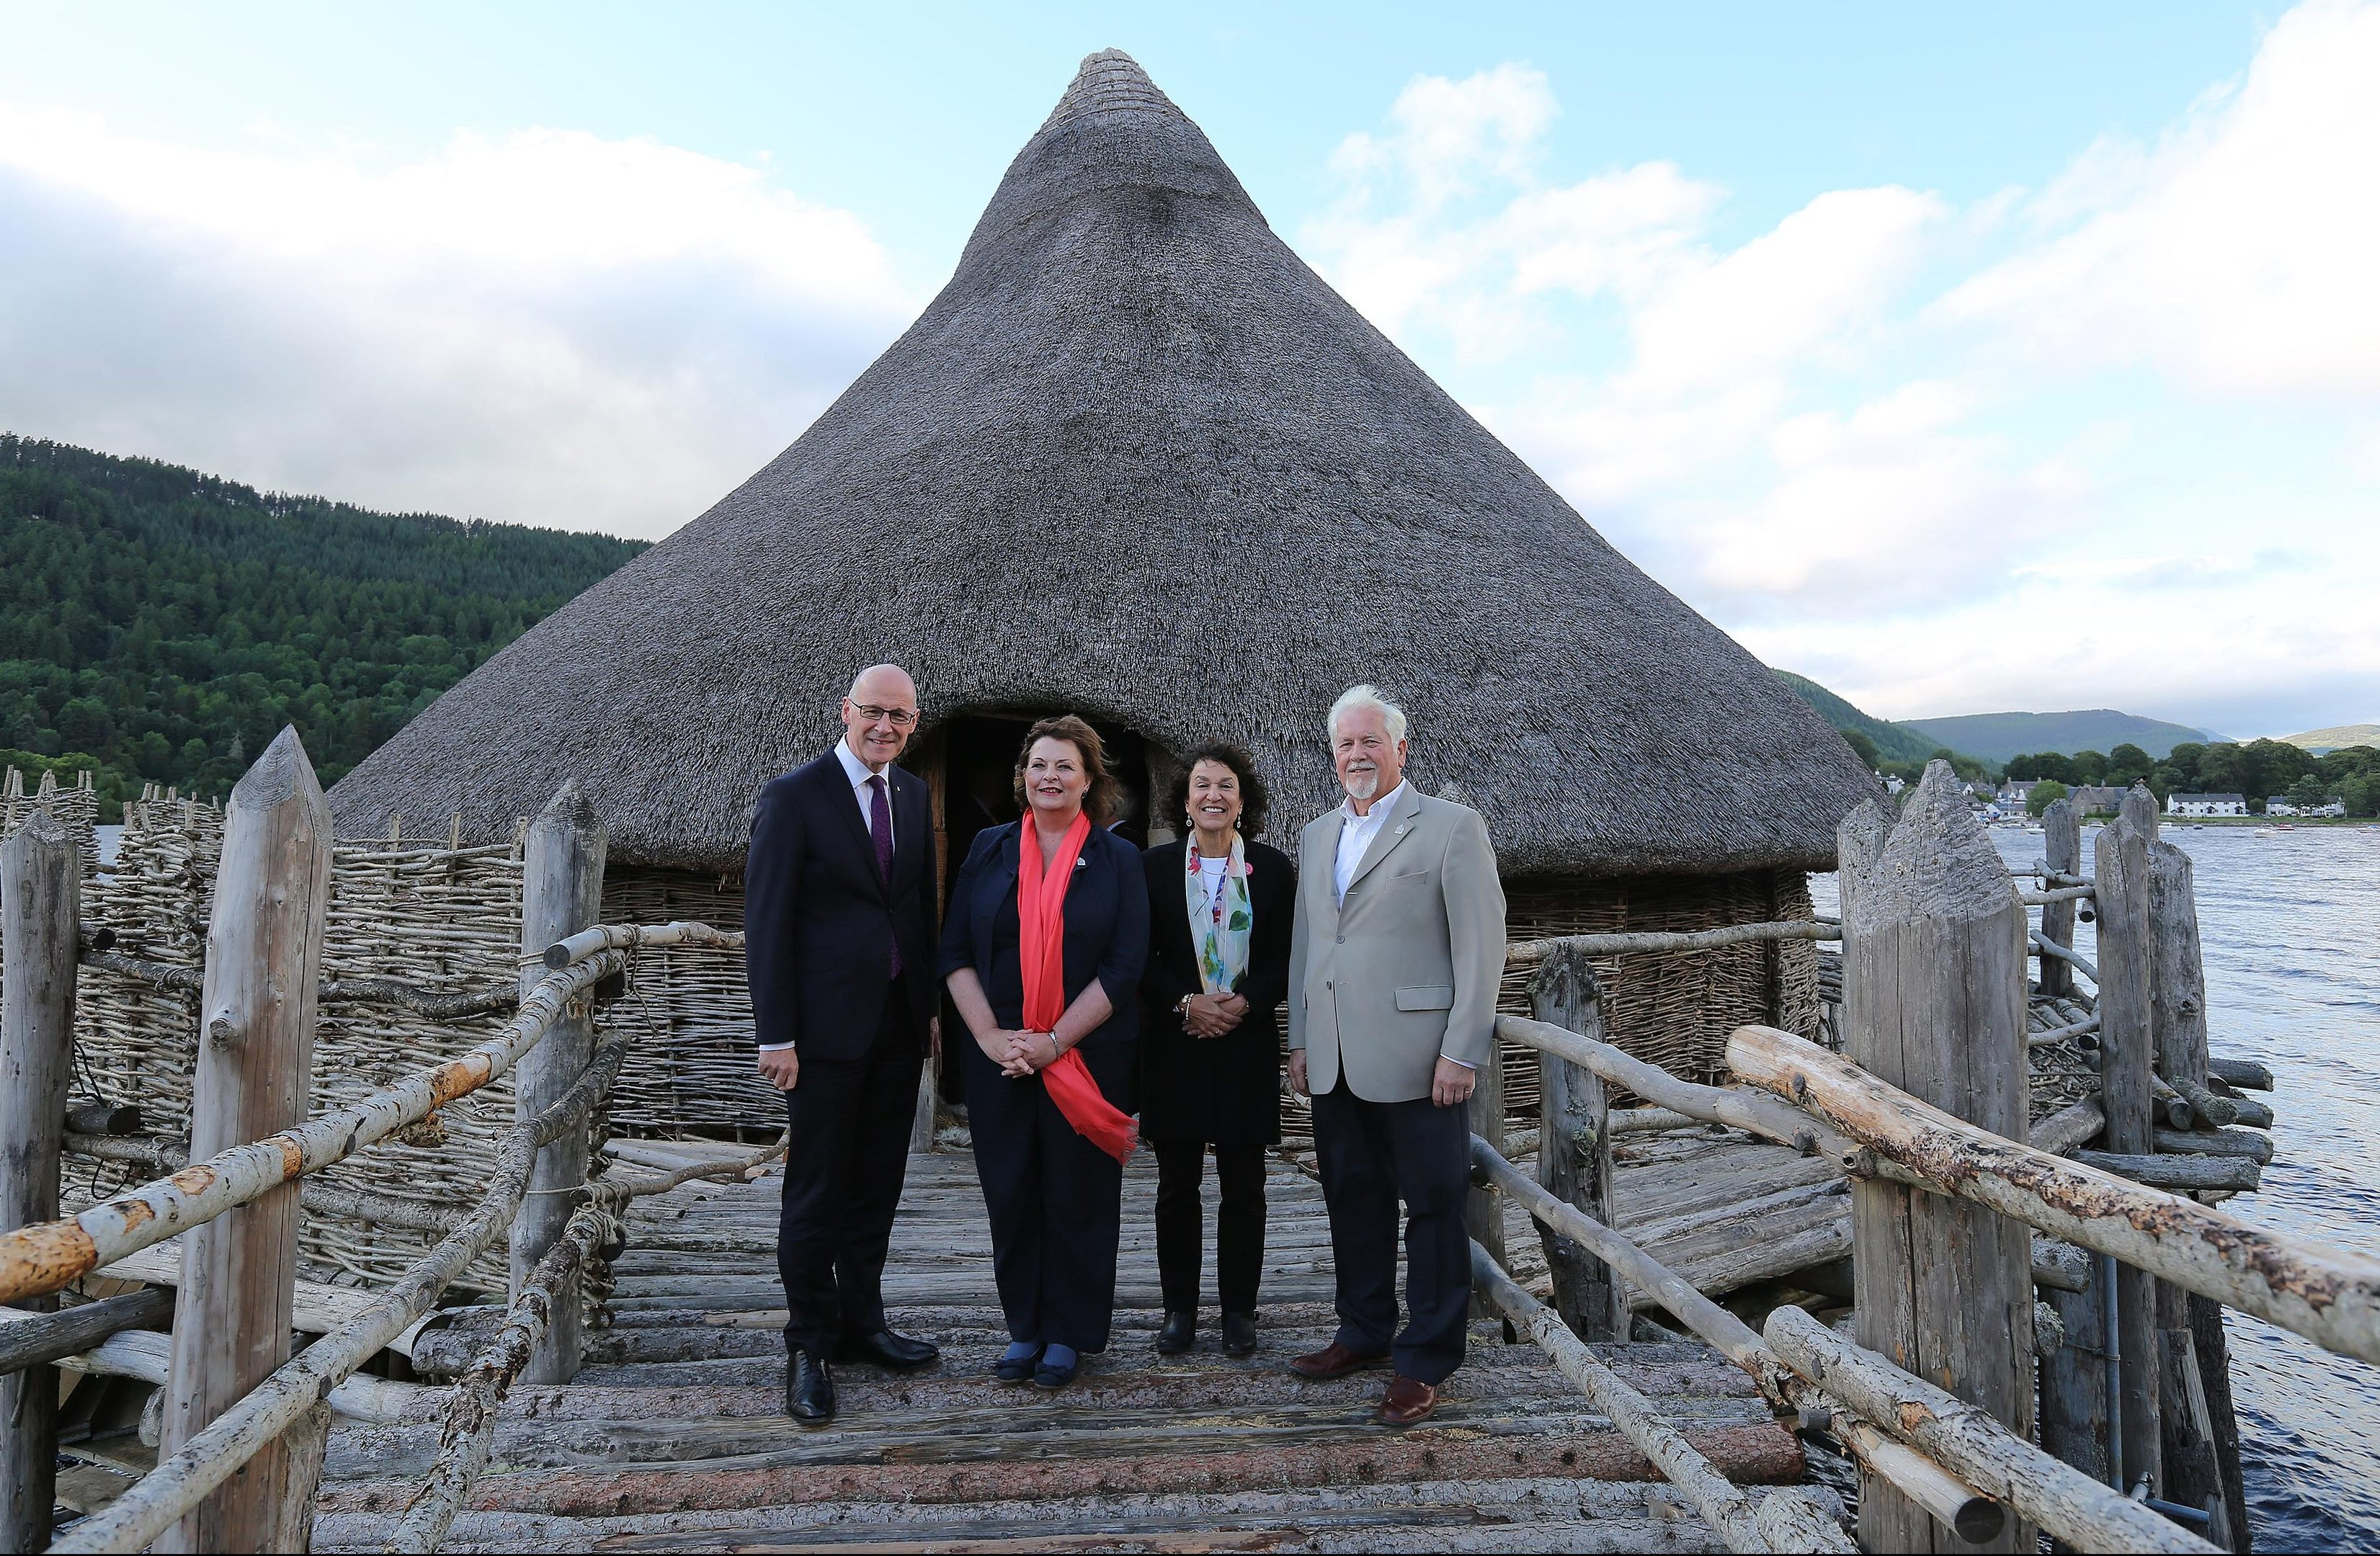 John Swinney, Fiona Hyslop, Barrie Andrian and Dr Nick Dixon at the crannog.